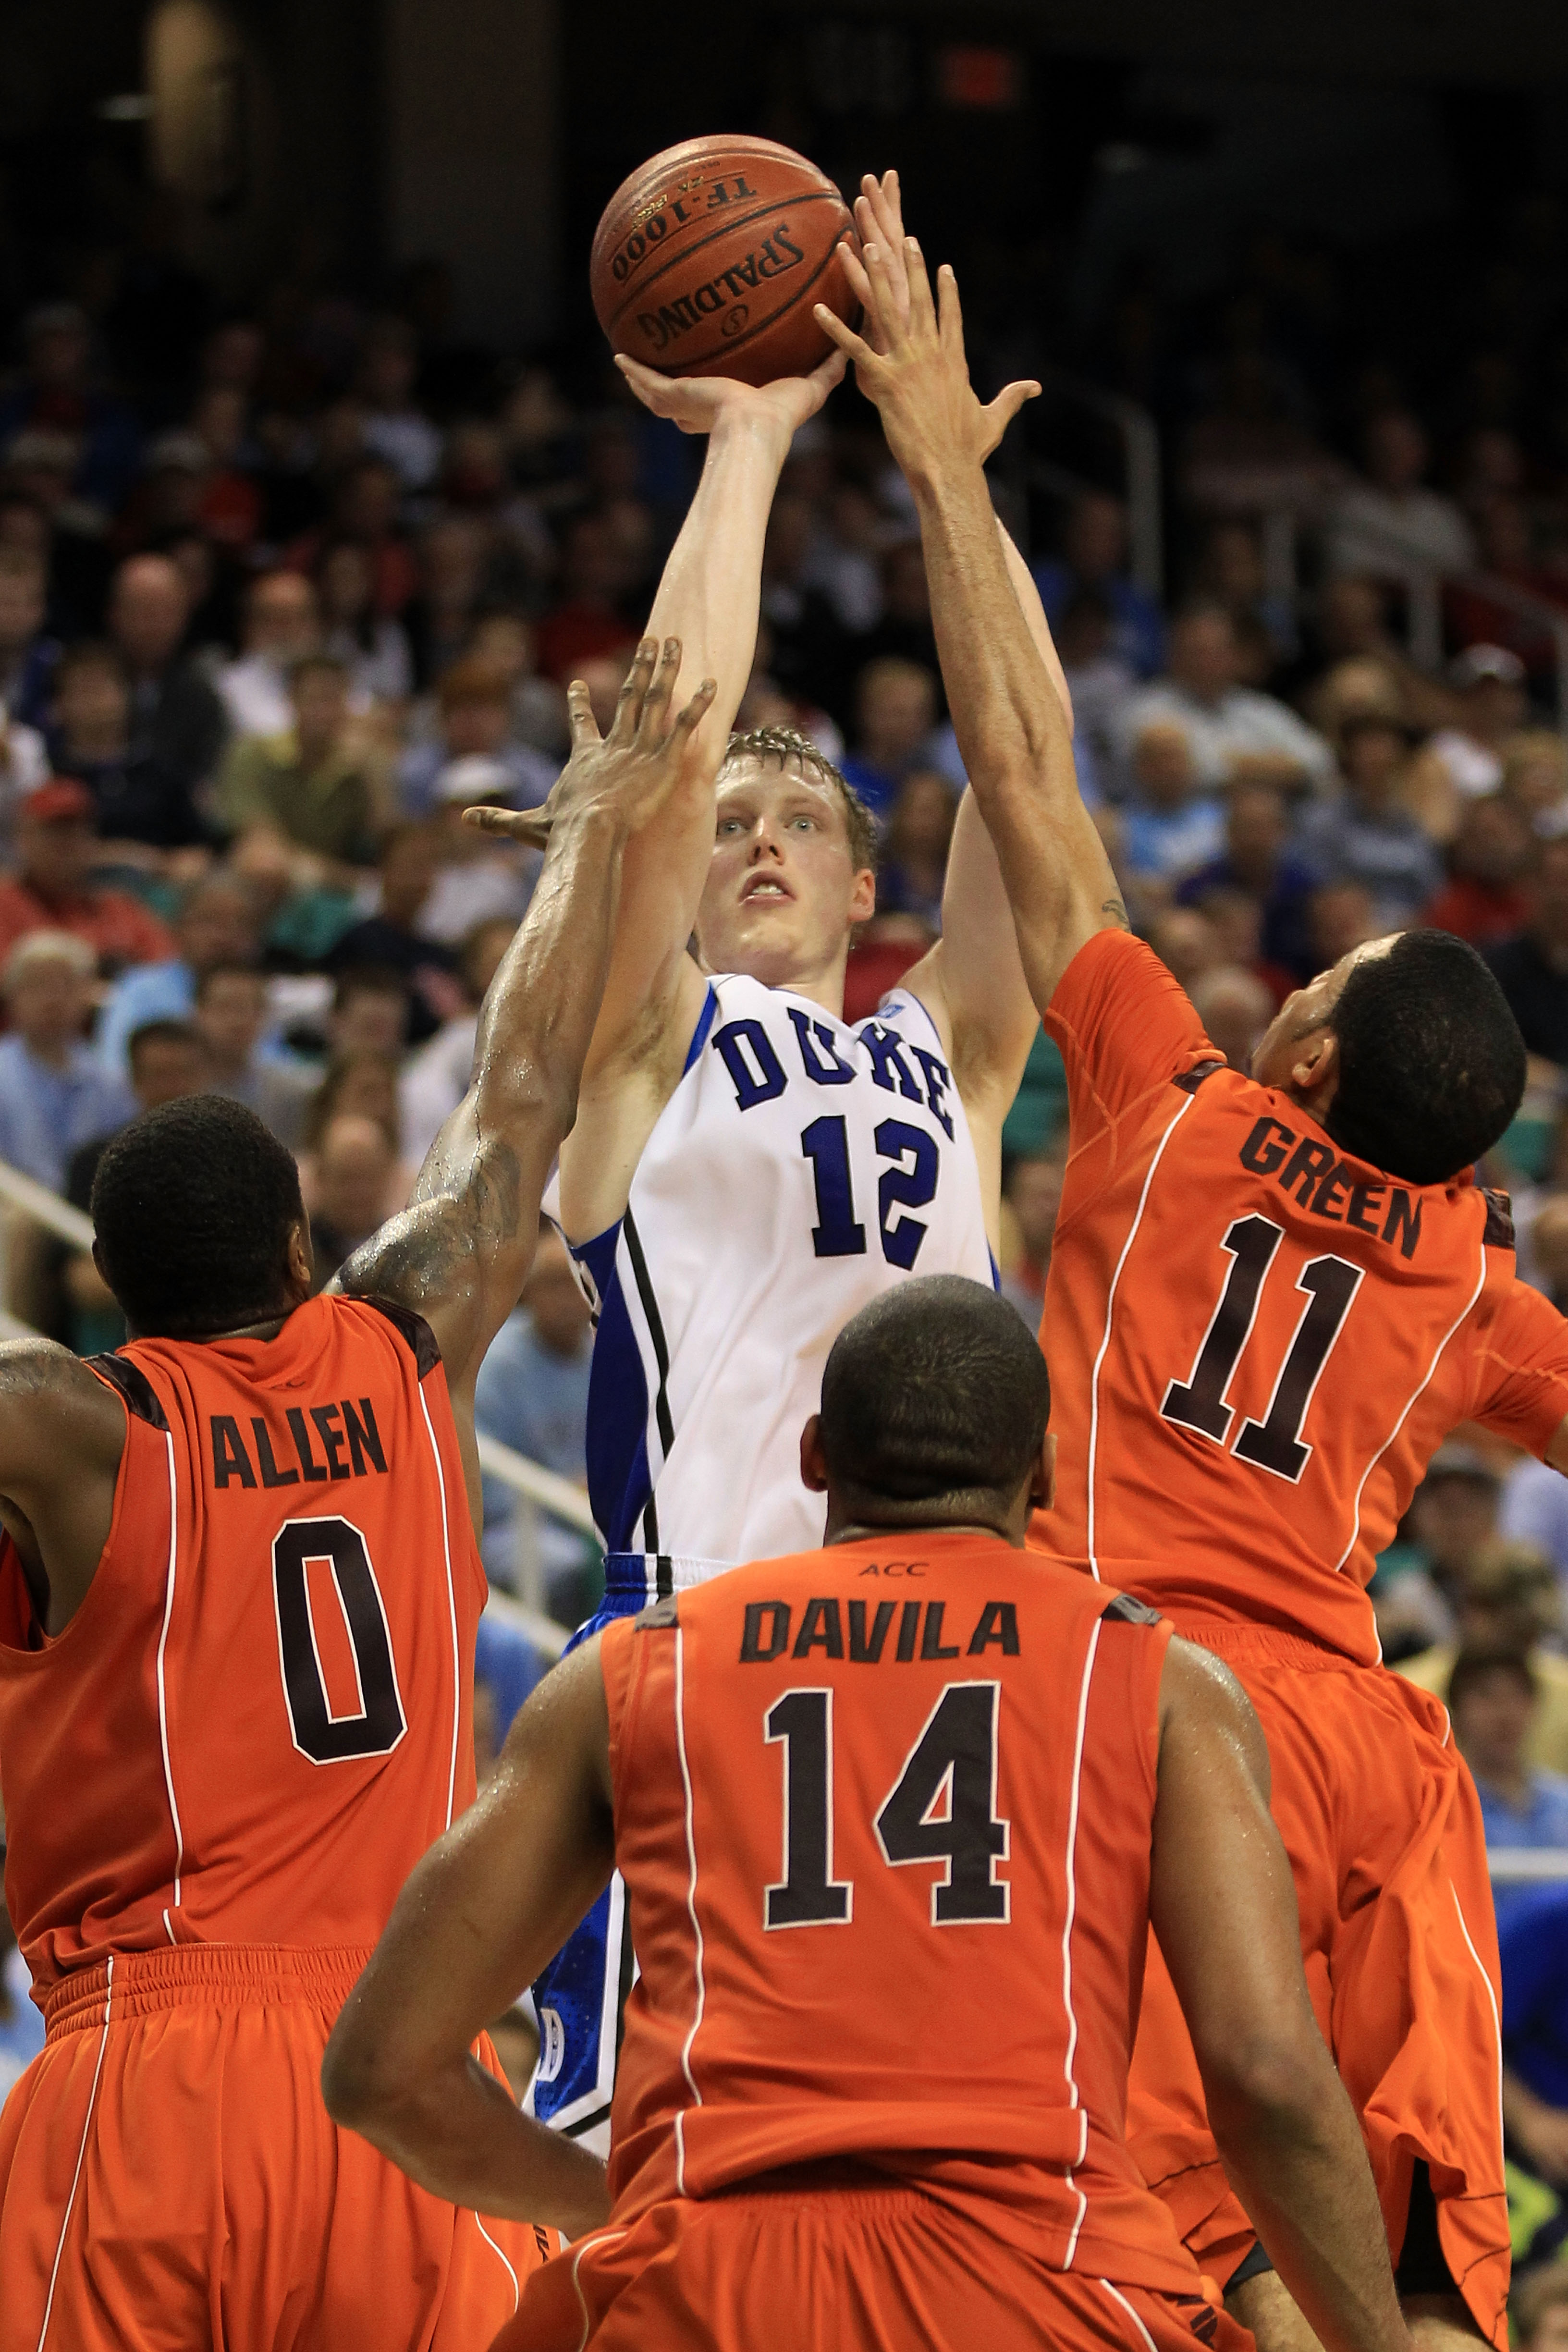 GREENSBORO, NC - MARCH 12:  Kyle Singler #12 of the Duke Blue Devils shoots against Jeff Allen #0, Victor Davila #14 and Erick Green #11 of the Virginia Tech Hokies during the first half in the semifinals of the 2011 ACC men's basketball tournament at the